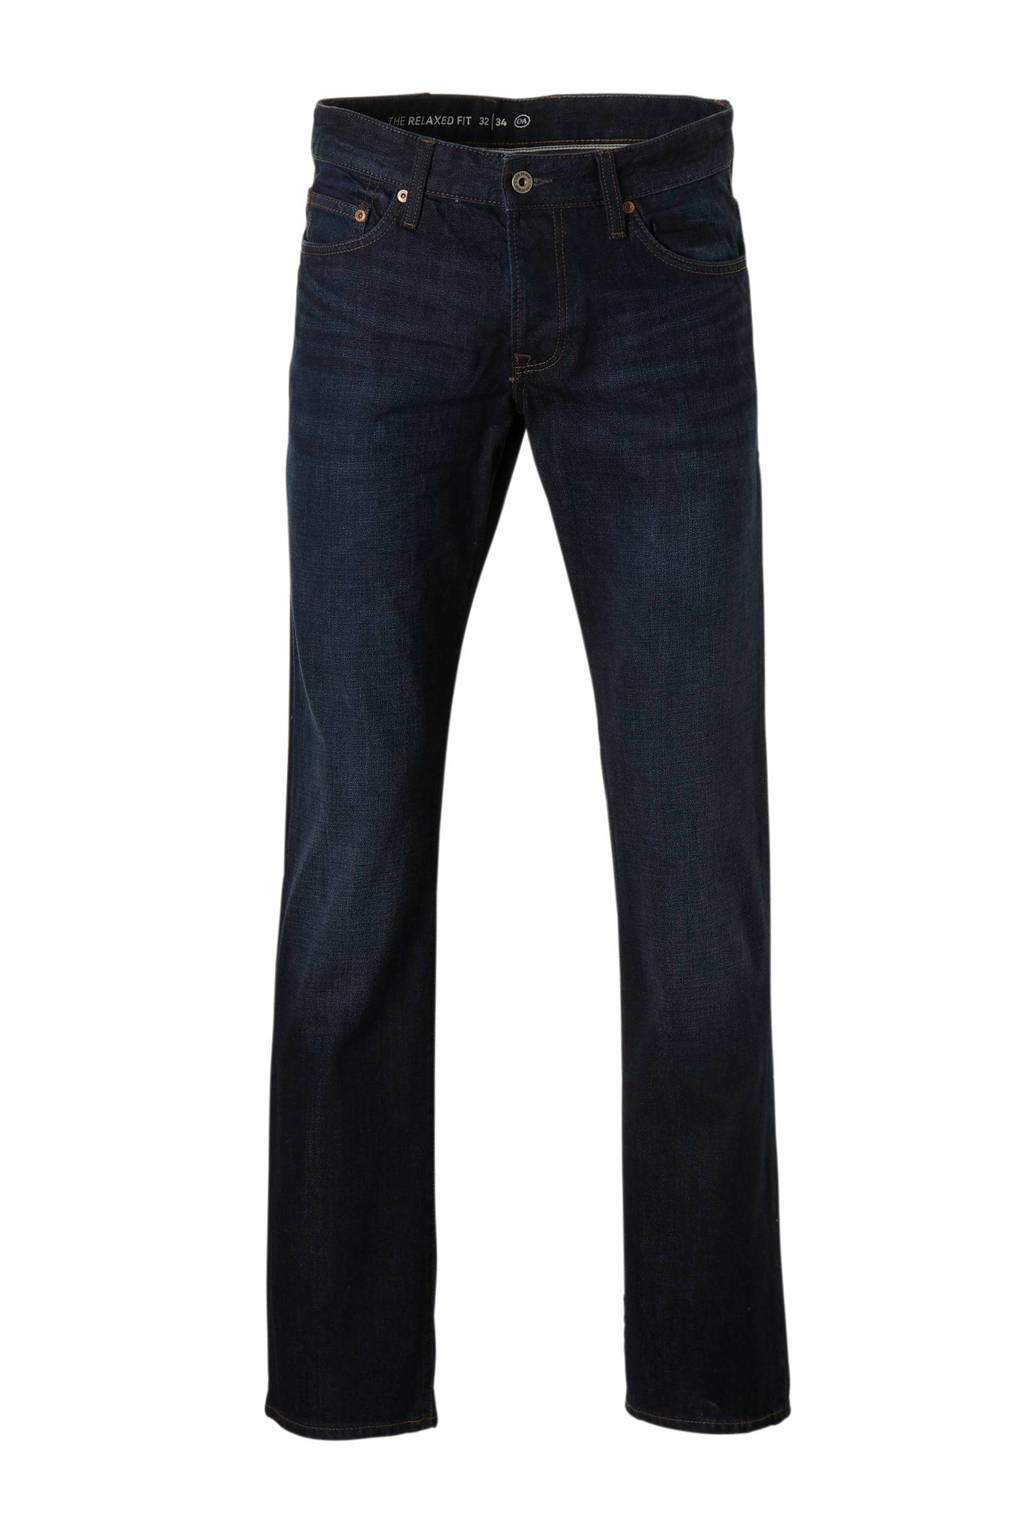 C&A The Denim regular fit jeans, Donkerblauw